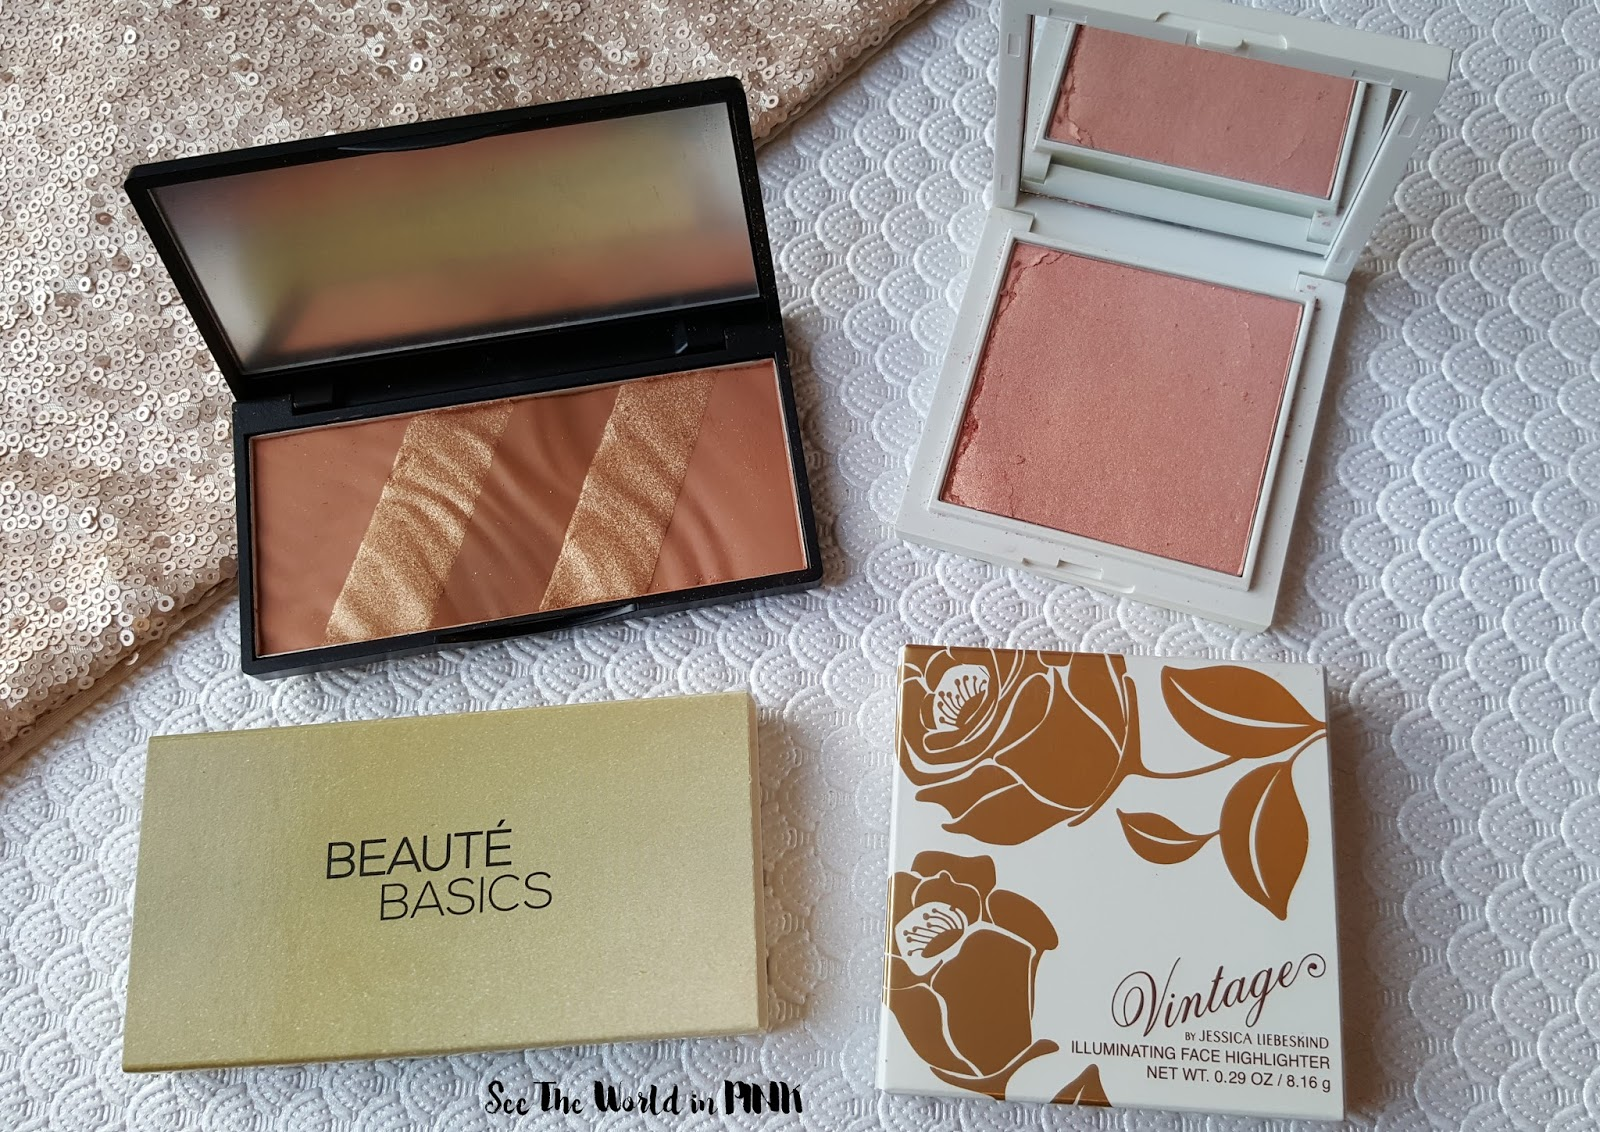 December 2017 Boxycharm - Unboxing, Swatches, Reviews and Full Makeup Try-on!